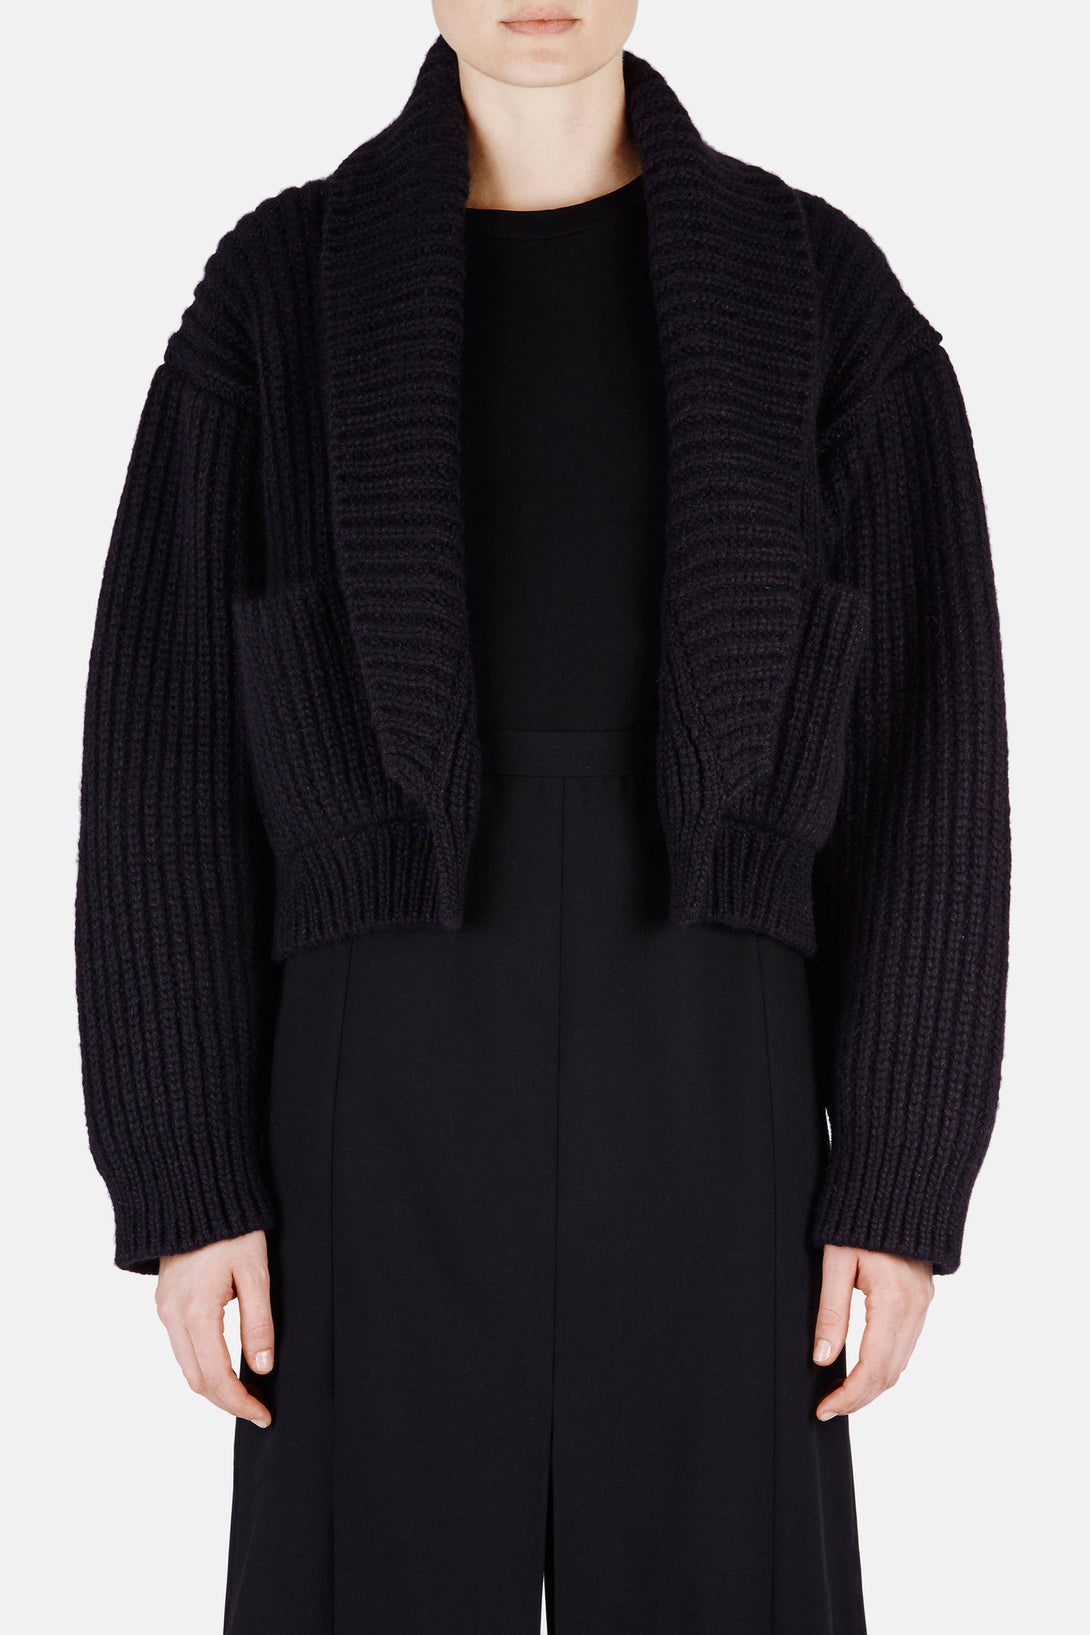 Sweater 13 Shawl Collar Ribbed Jacket - Black